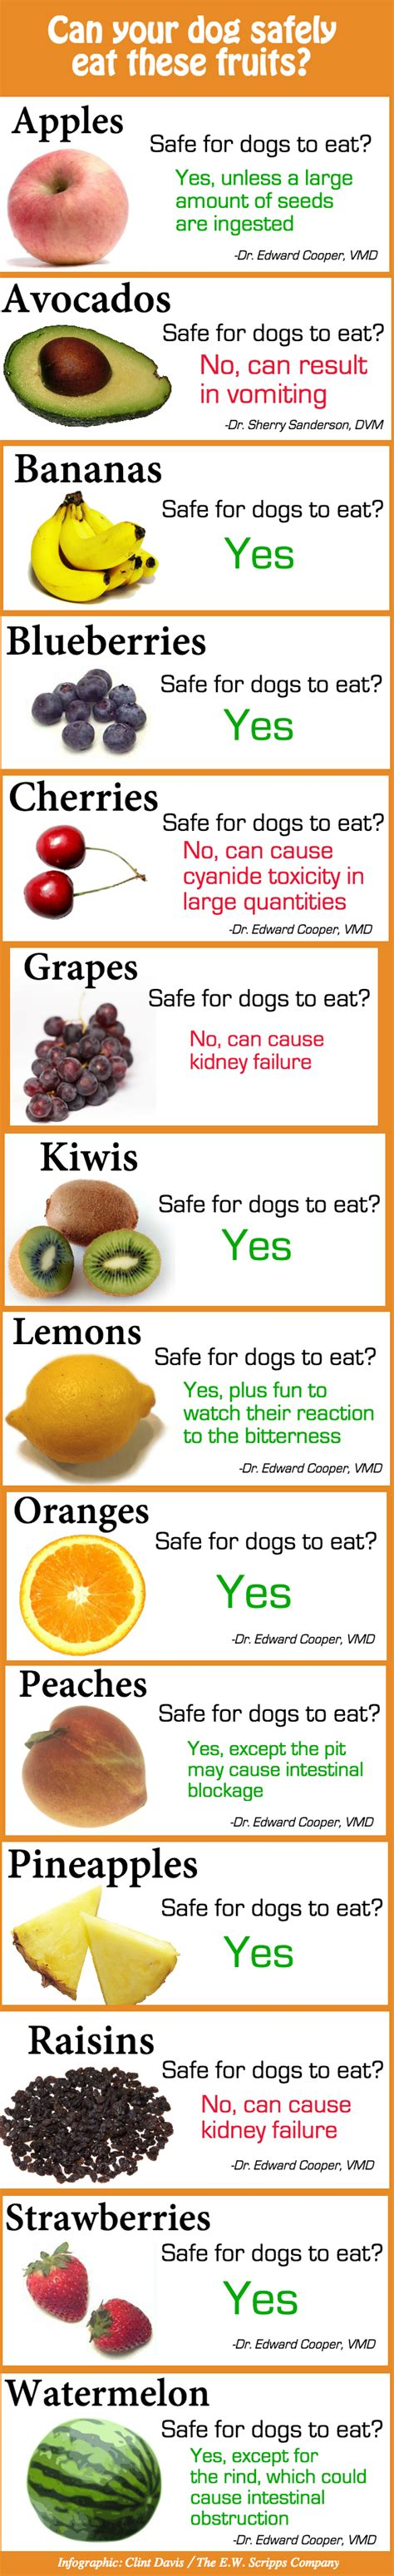 fruits dogs can eat can your safely eat these fruits beingstray